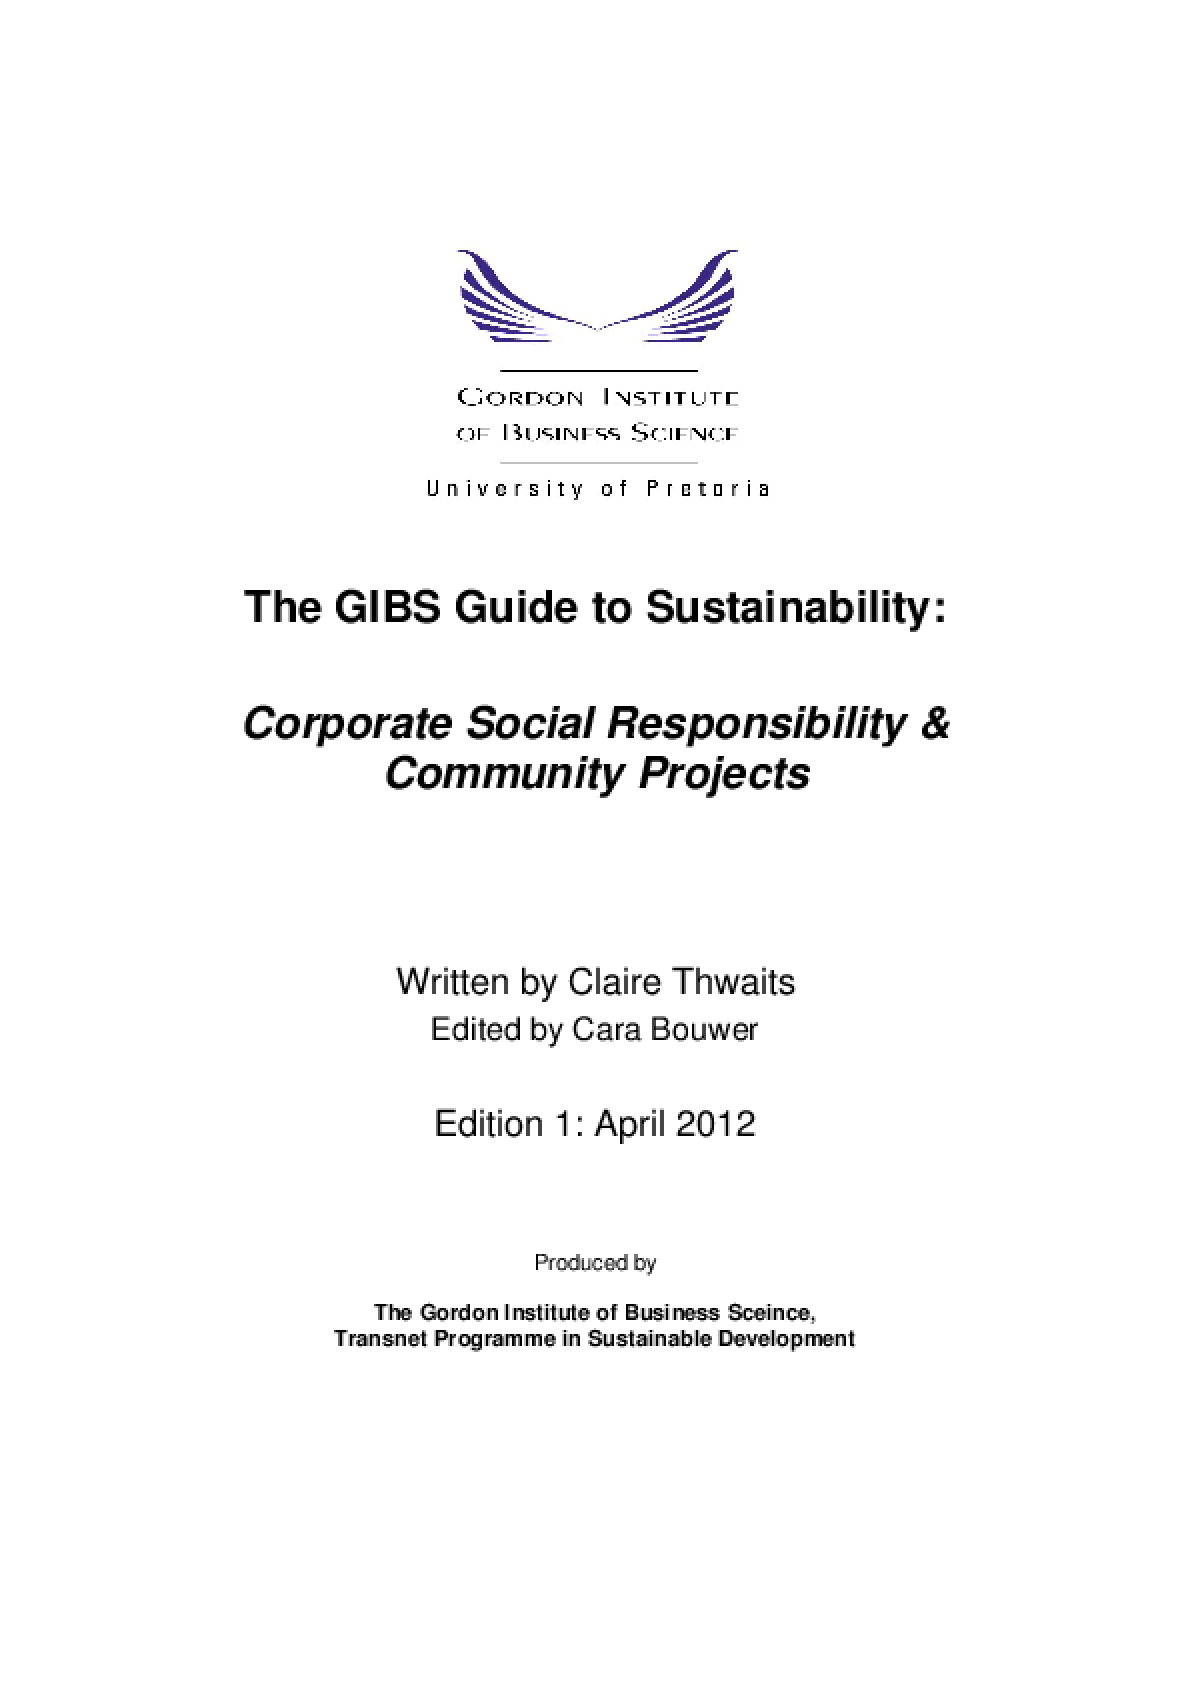 The GIBS Guide to Sustainability: Corporate Social Responsibility and Community Projects